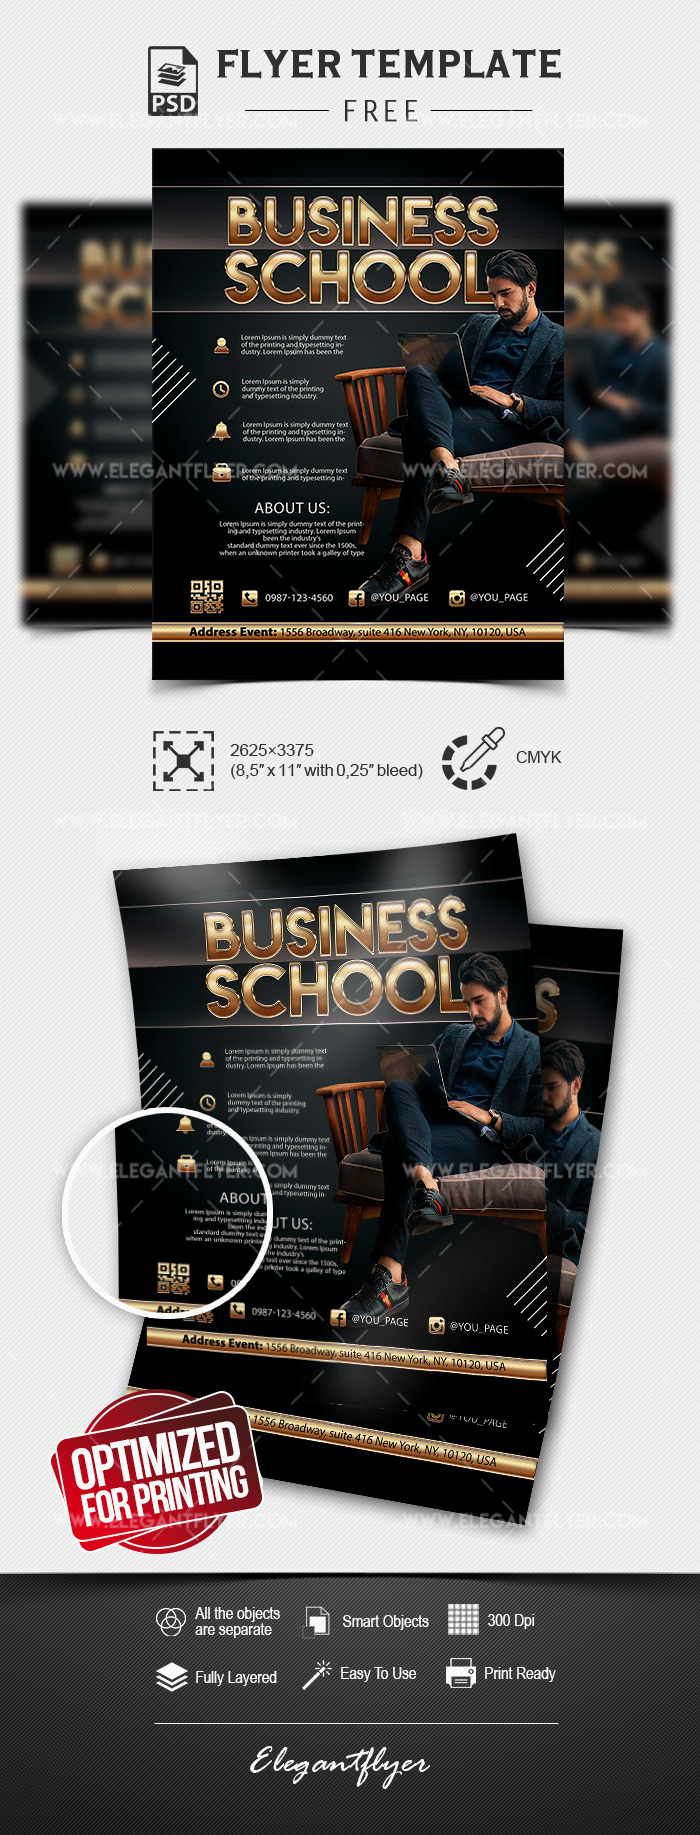 Business School – Free Flyer Template in PSD